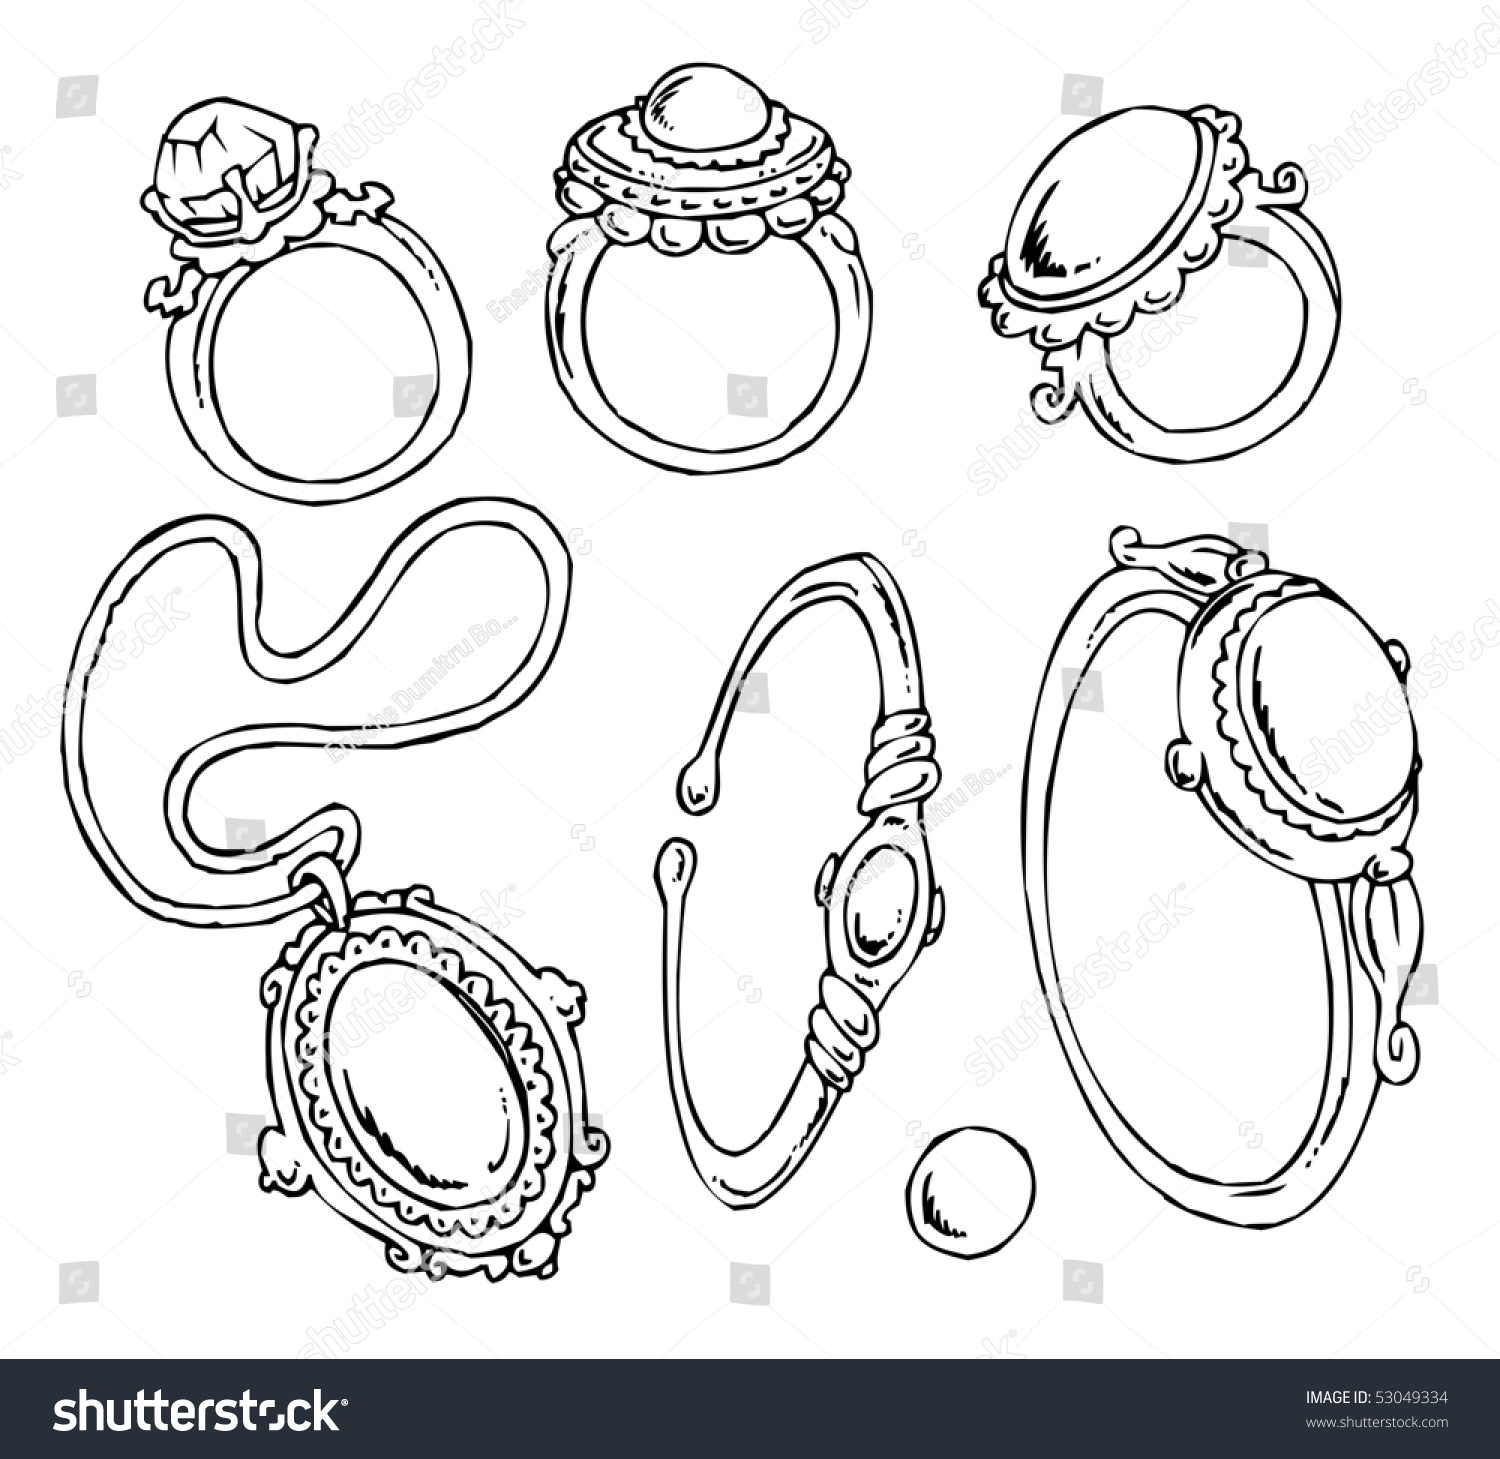 Cartoon Jewelryclipart Stock Vector 53049334